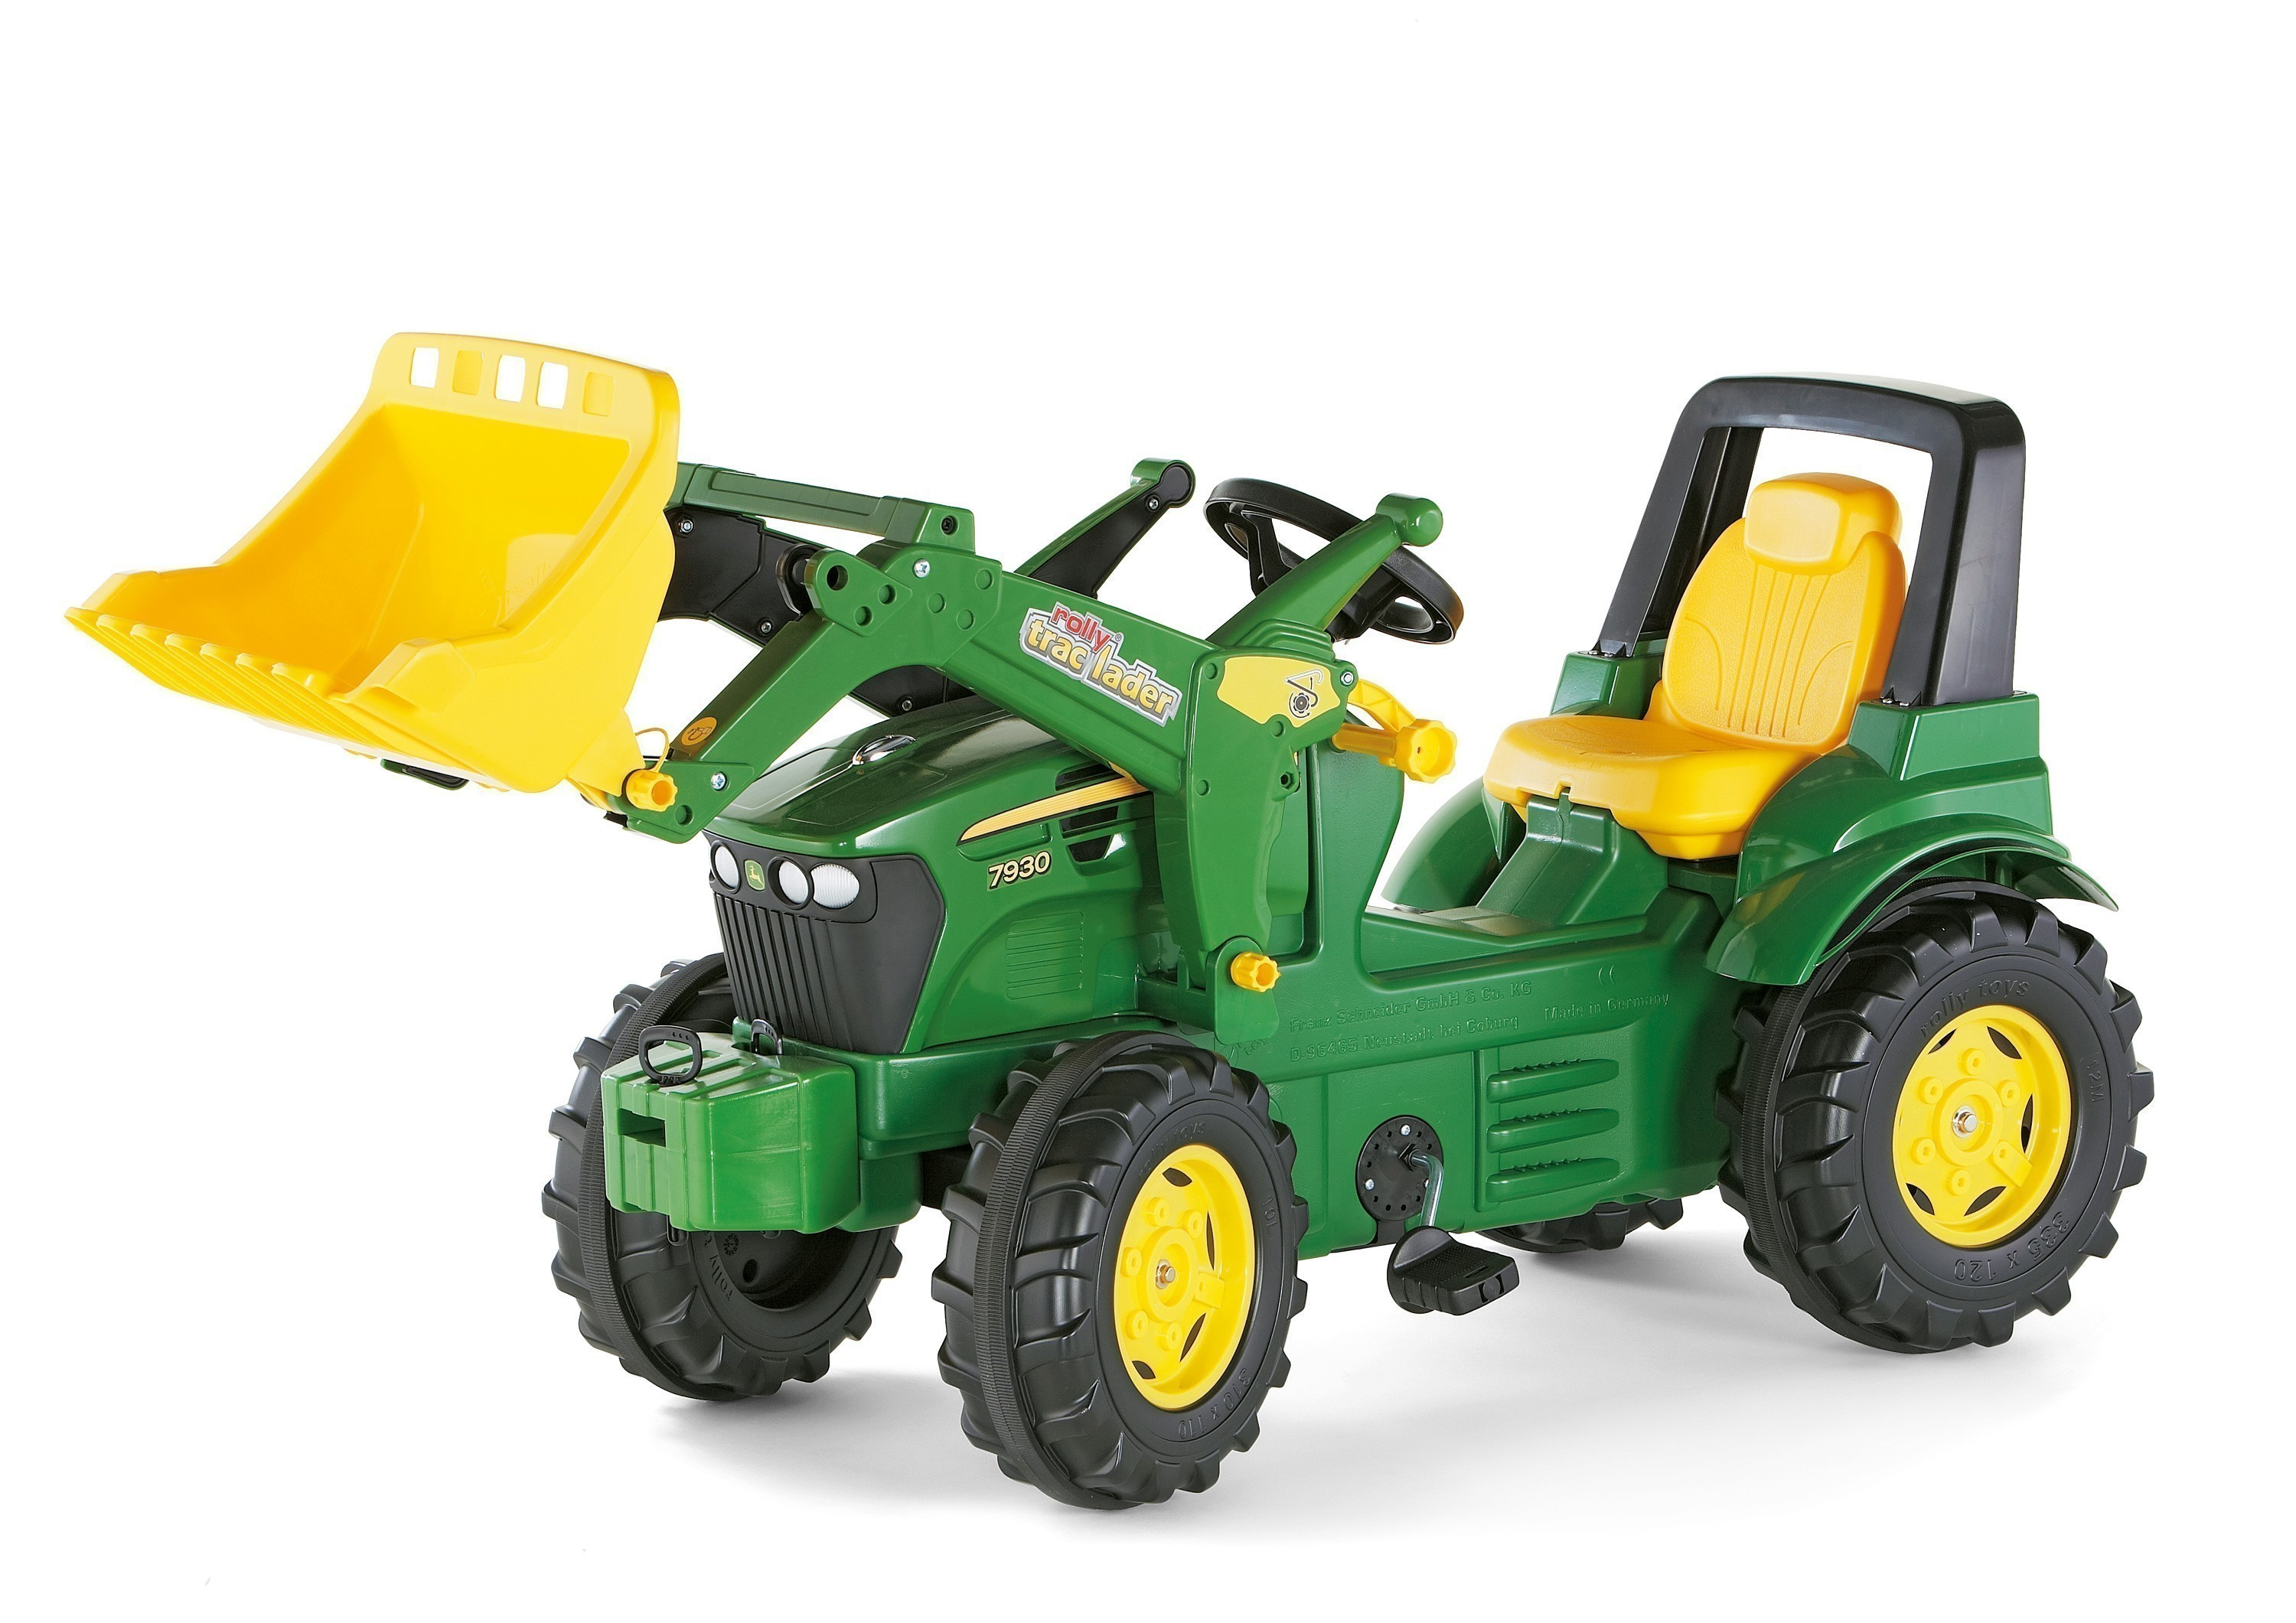 kinderfahrzeug trettraktor john deere 7930 mit frontlader. Black Bedroom Furniture Sets. Home Design Ideas